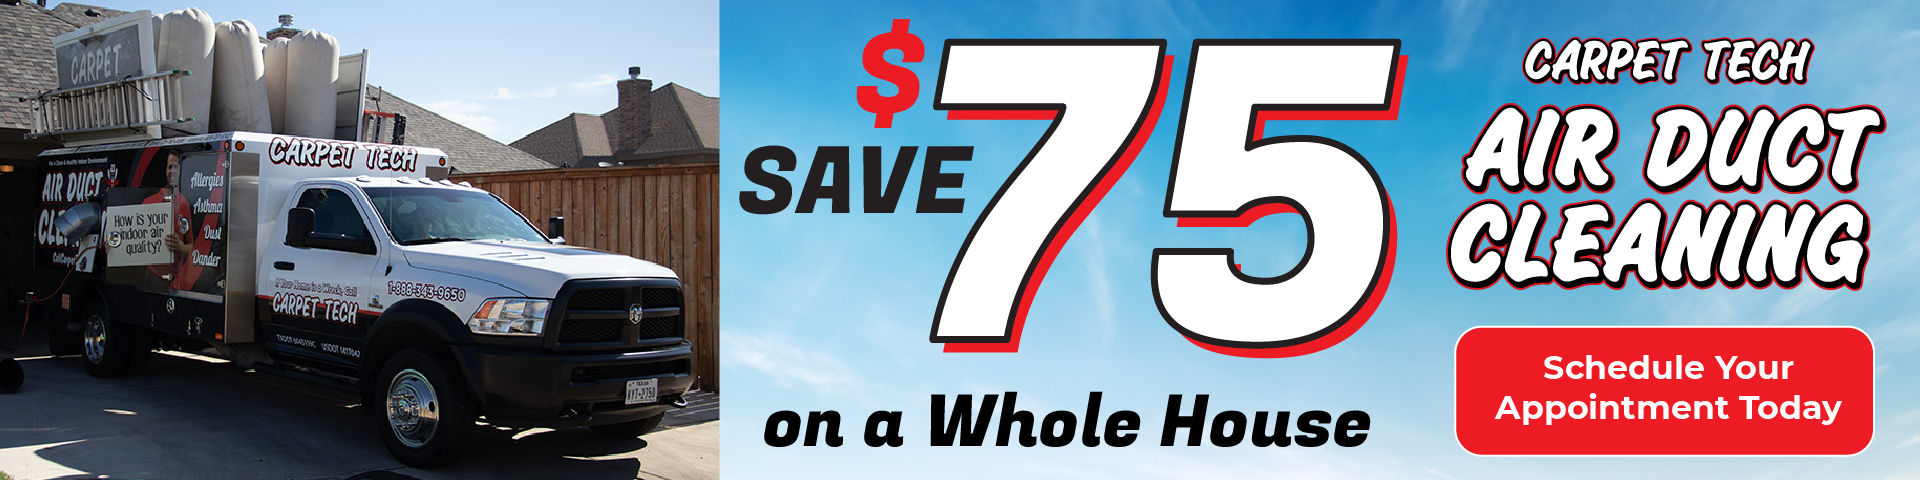 Save $75 on a Whole House Air Duct Cleaning